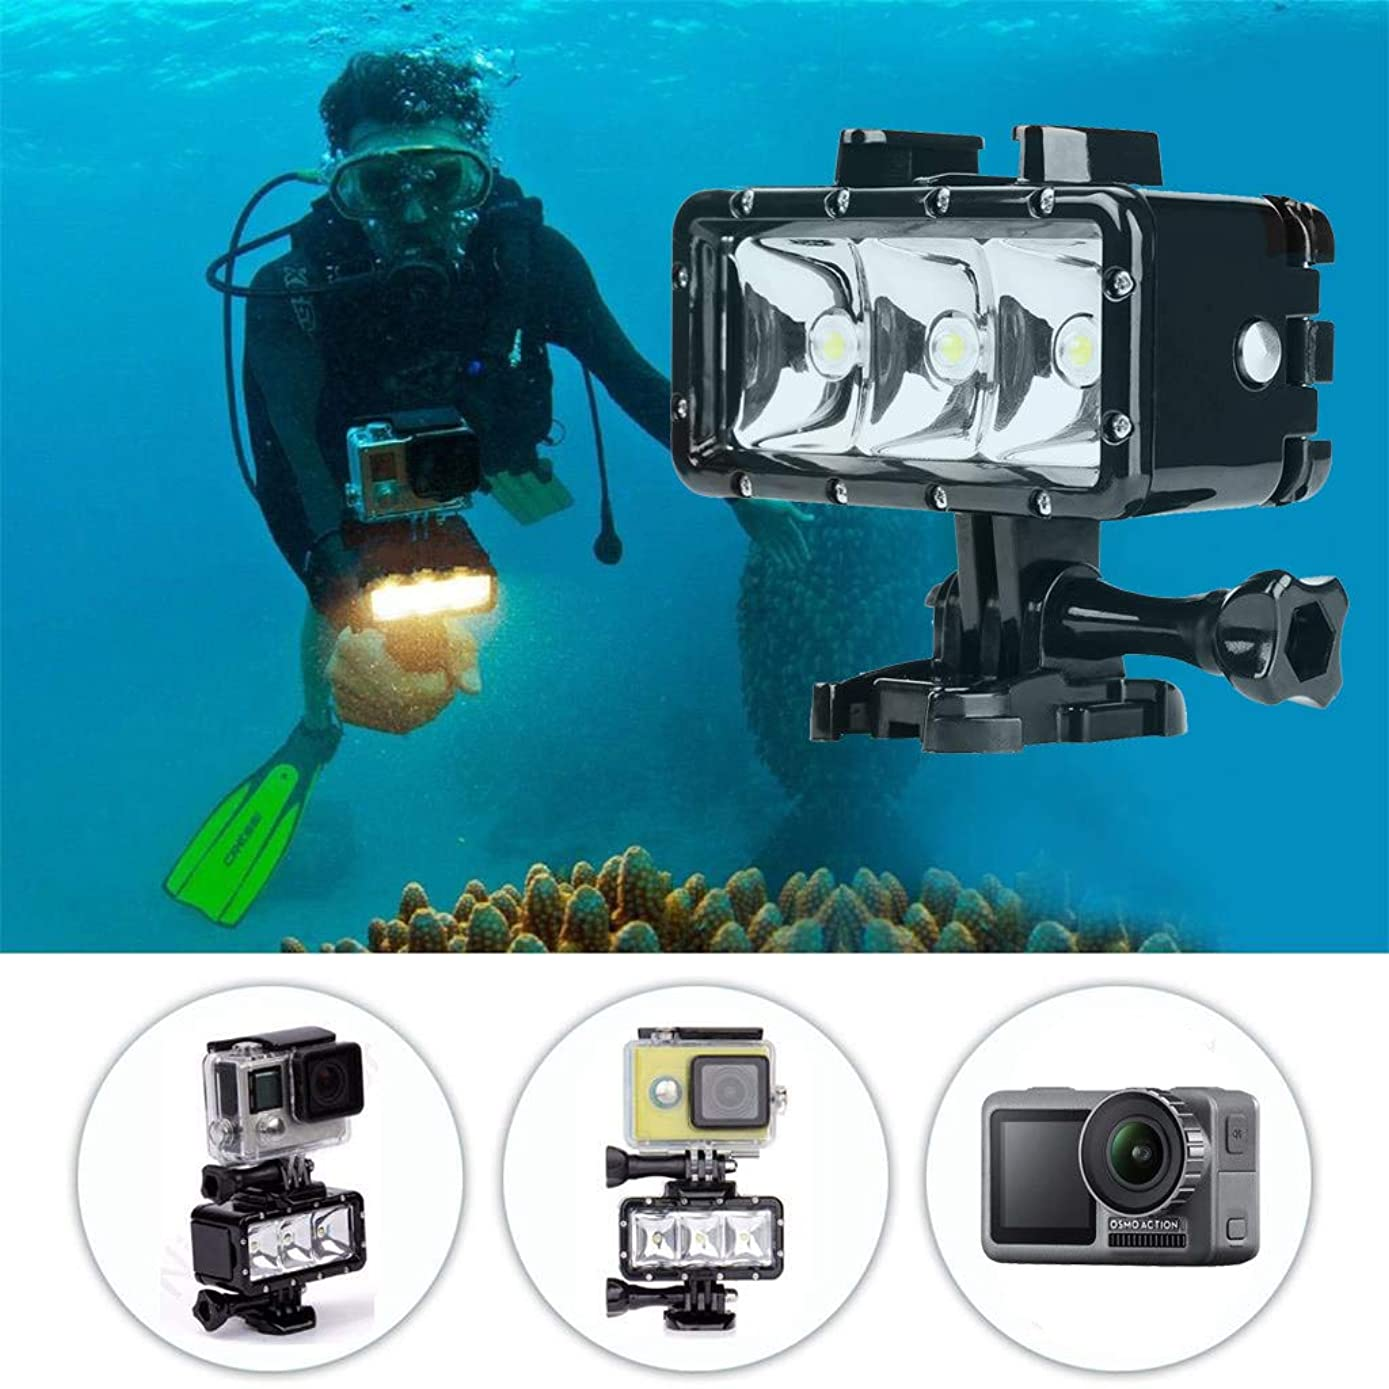 Dirance Underwater Flashlight Camera Fill Light -40M Waterproof 3LED Dive Light 300LM, Camera Accessories